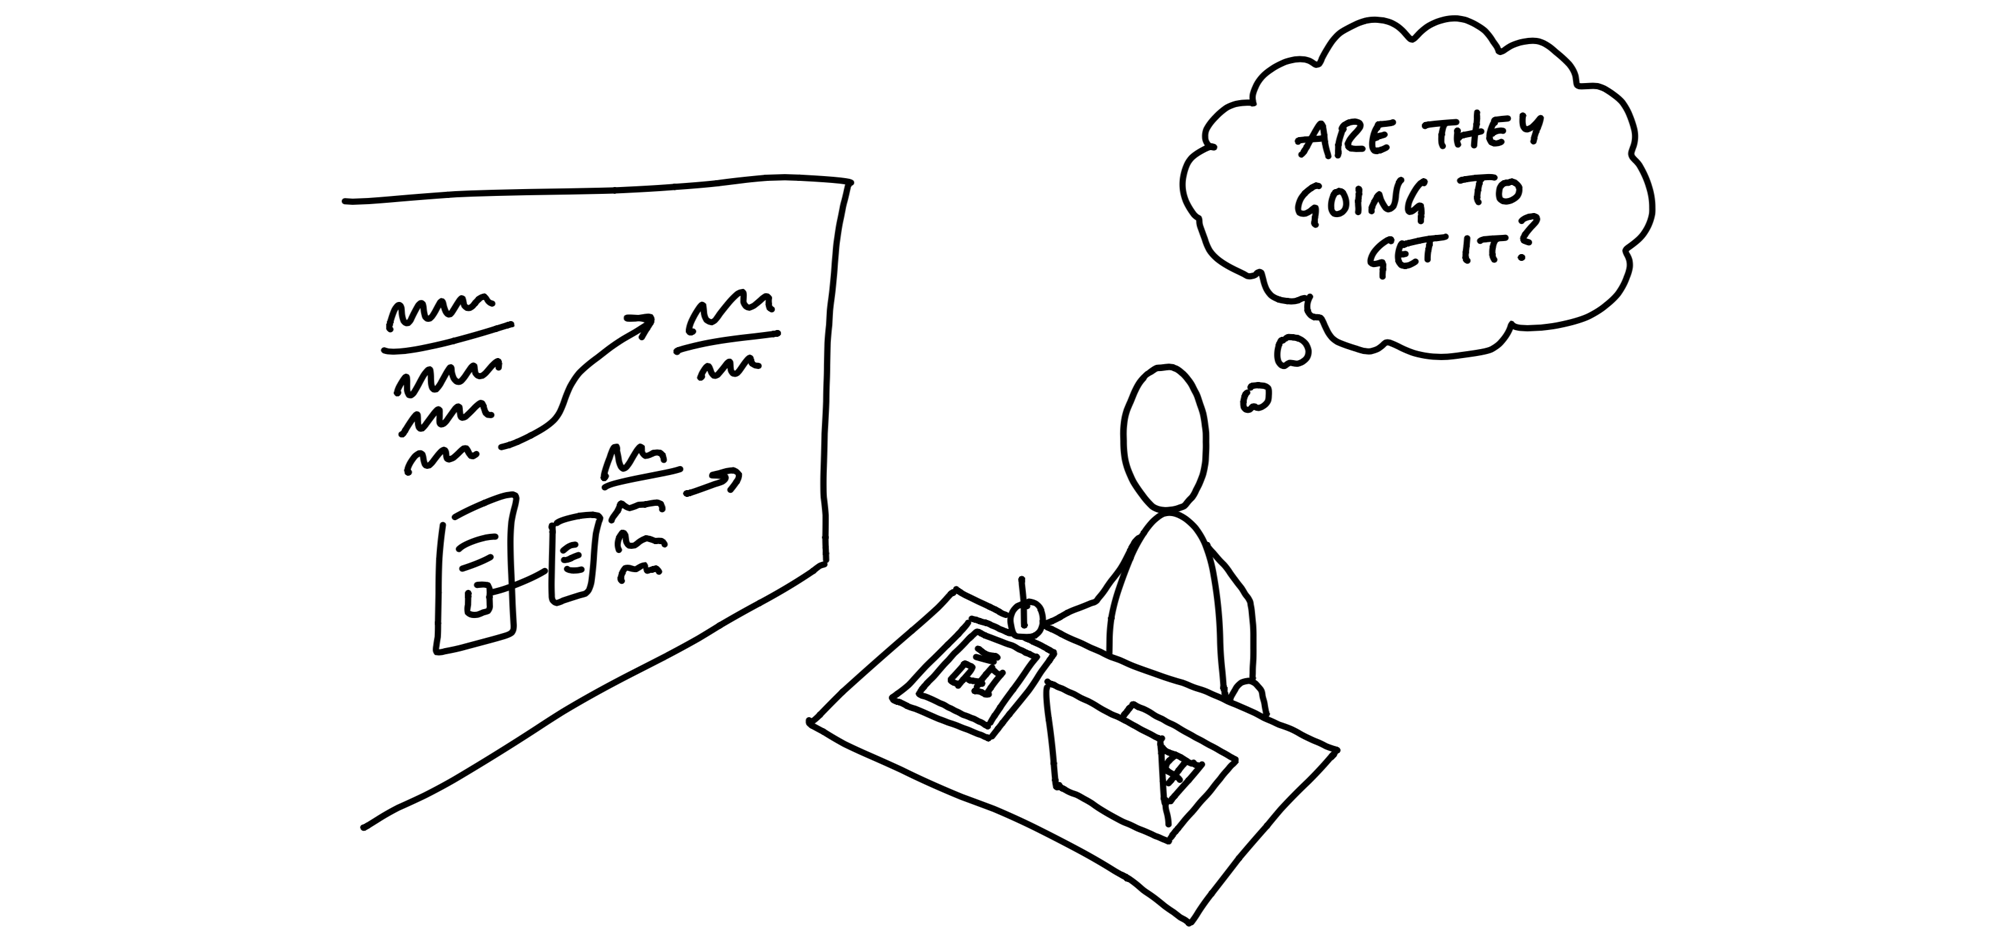 Cartoon. A person stands at a desk. To their right is a whiteboard with a breadboard and fat marker sketch. At the table in front of them is an open laptop and a tablet with a fat marker sketch drawn on it. The person holds a stylus above the tablet while thinking: Are they going to get it?